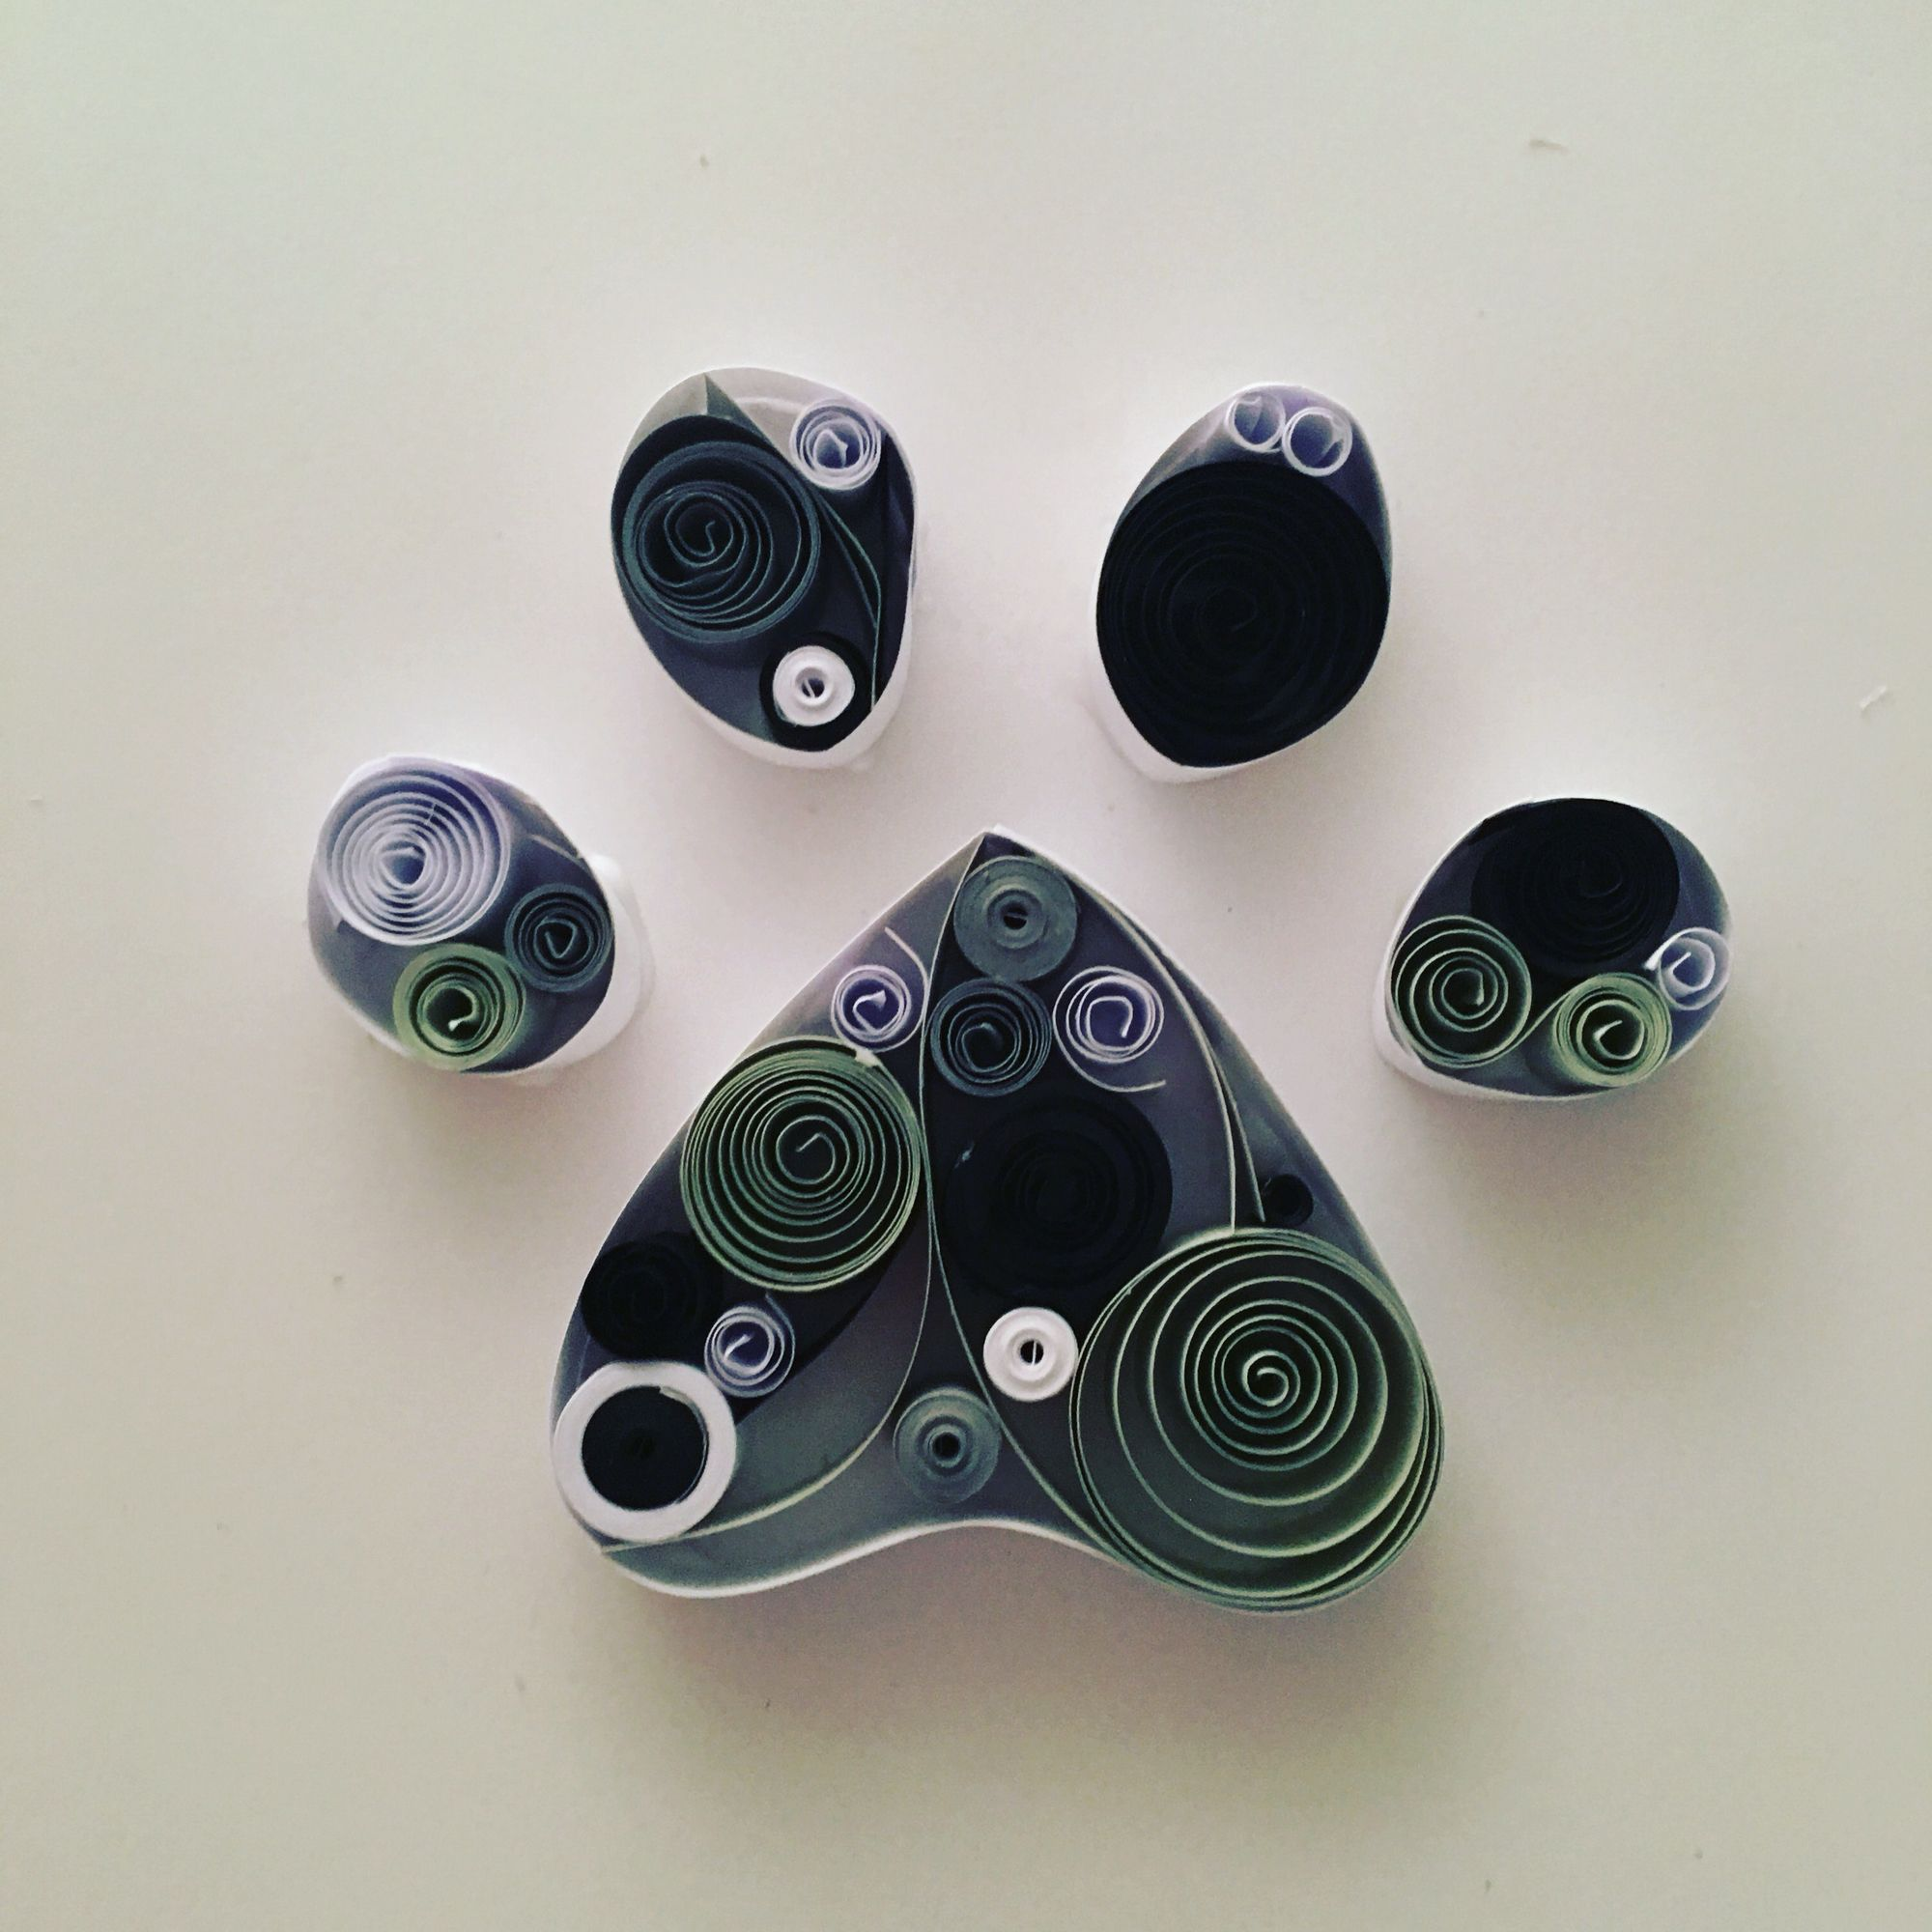 Paw Print Paper Quilling Art, Perfect For Gift Or Home Decor #quilling # Quilled